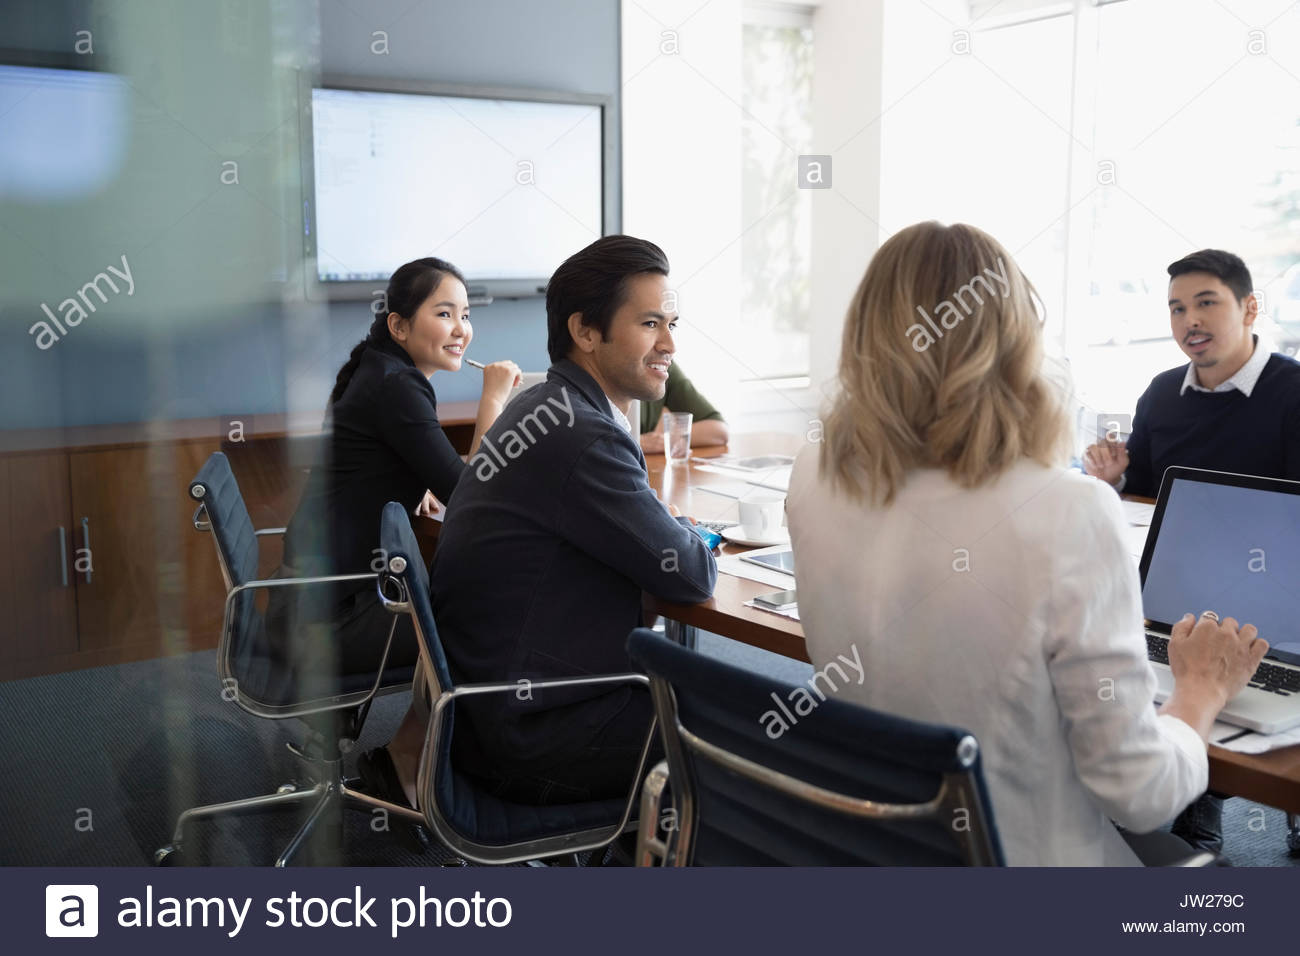 Business people talking, using laptop in conference room meeting - Stock Image